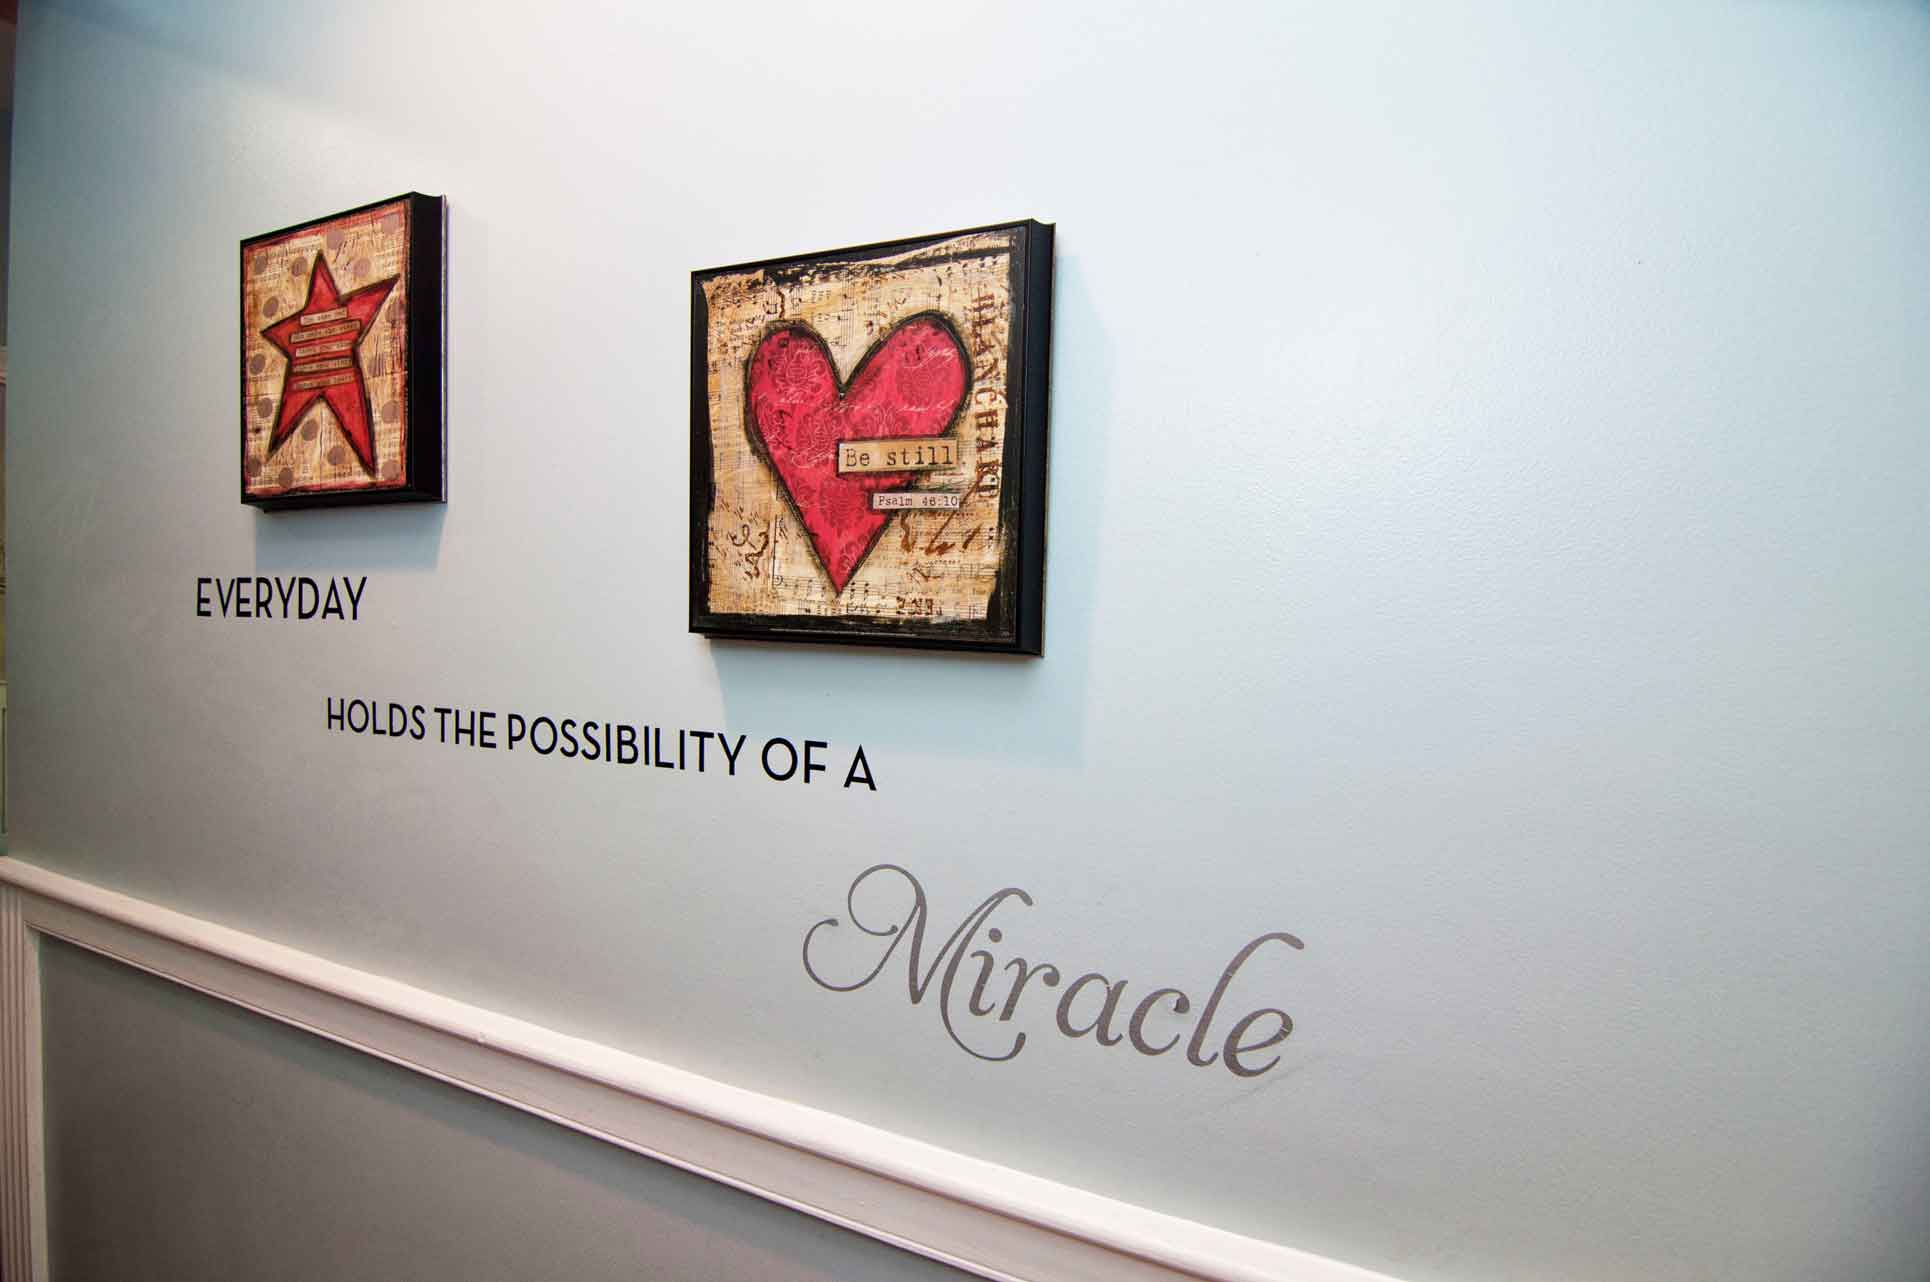 Christian-Quotes-on-Wall-at-Burlington-Private-Christian-School